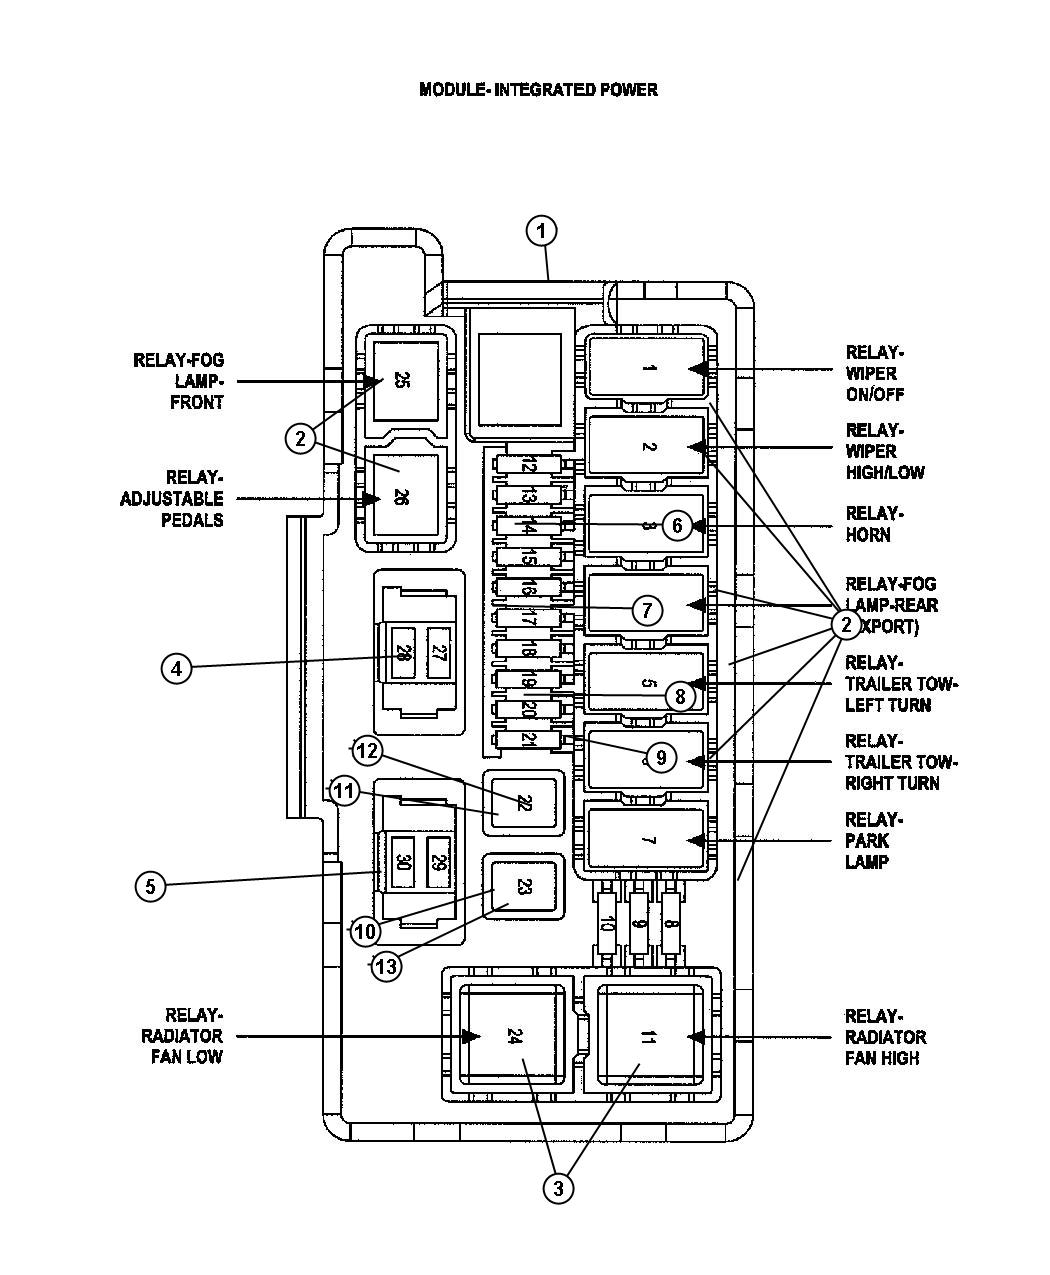 i2163577 jeep stereo wiring diagram jeep free wiring diagrams 2008 jeep wrangler horn wiring diagram at mifinder.co